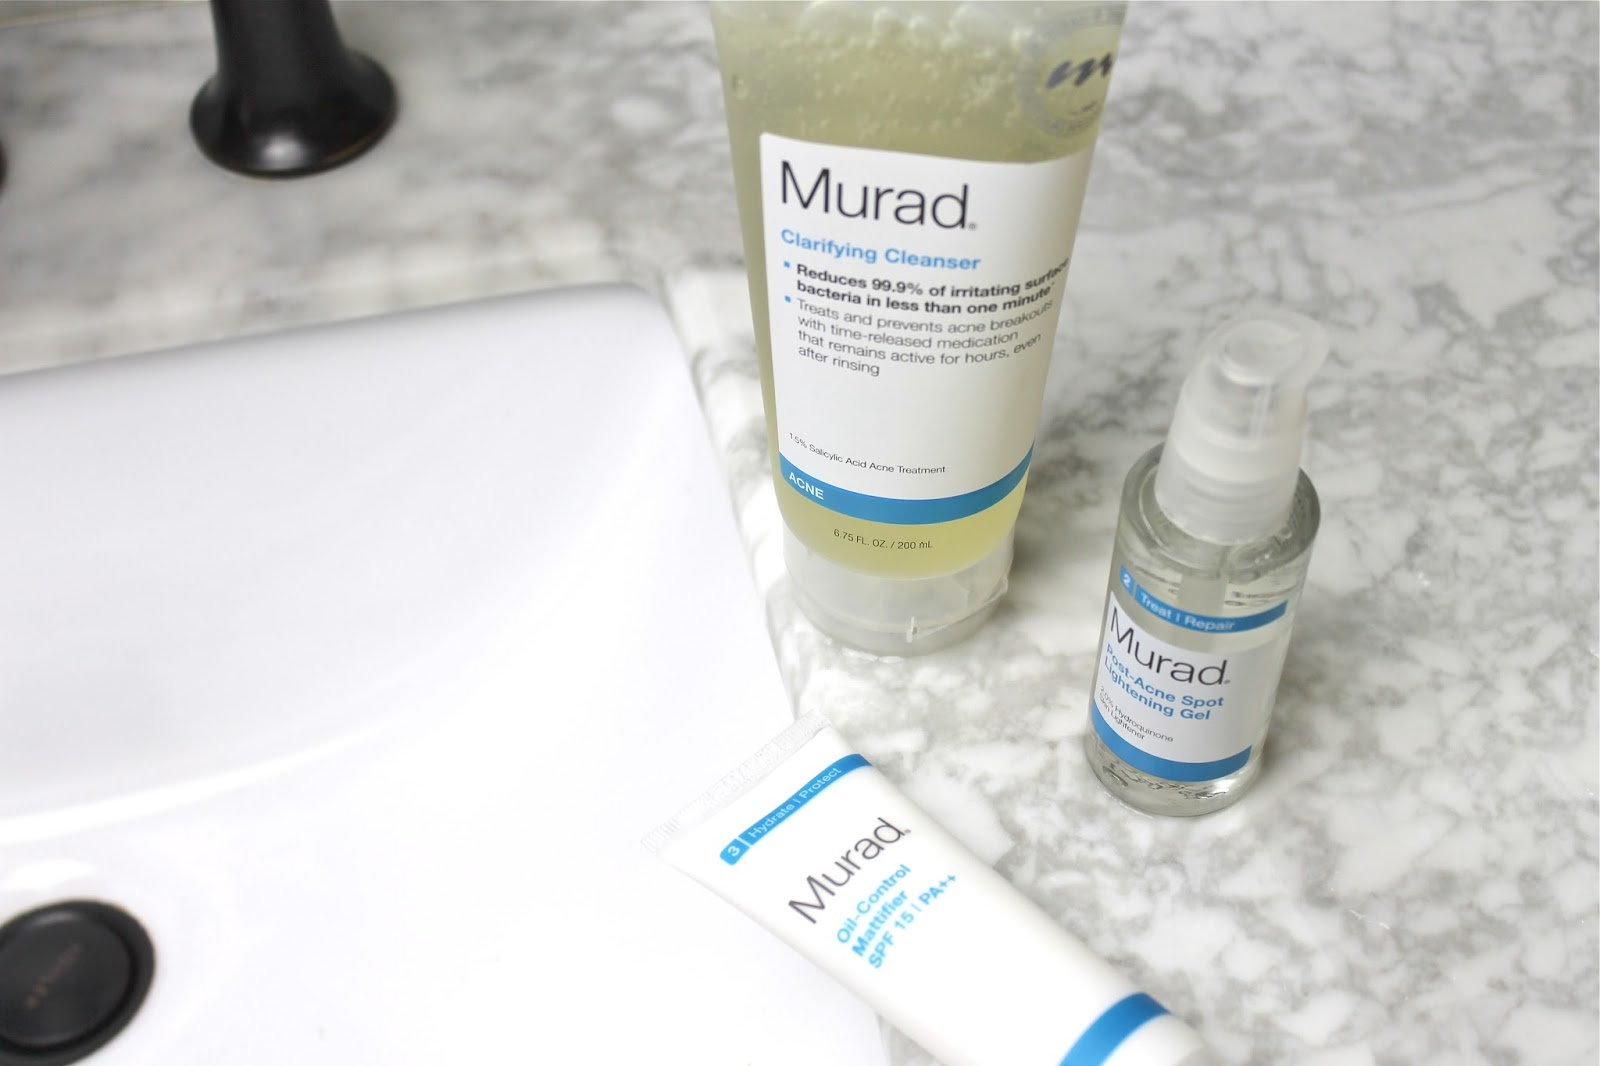 MURAD'S COMPREHENSIVE SKIN-CLEARING SYSTEM